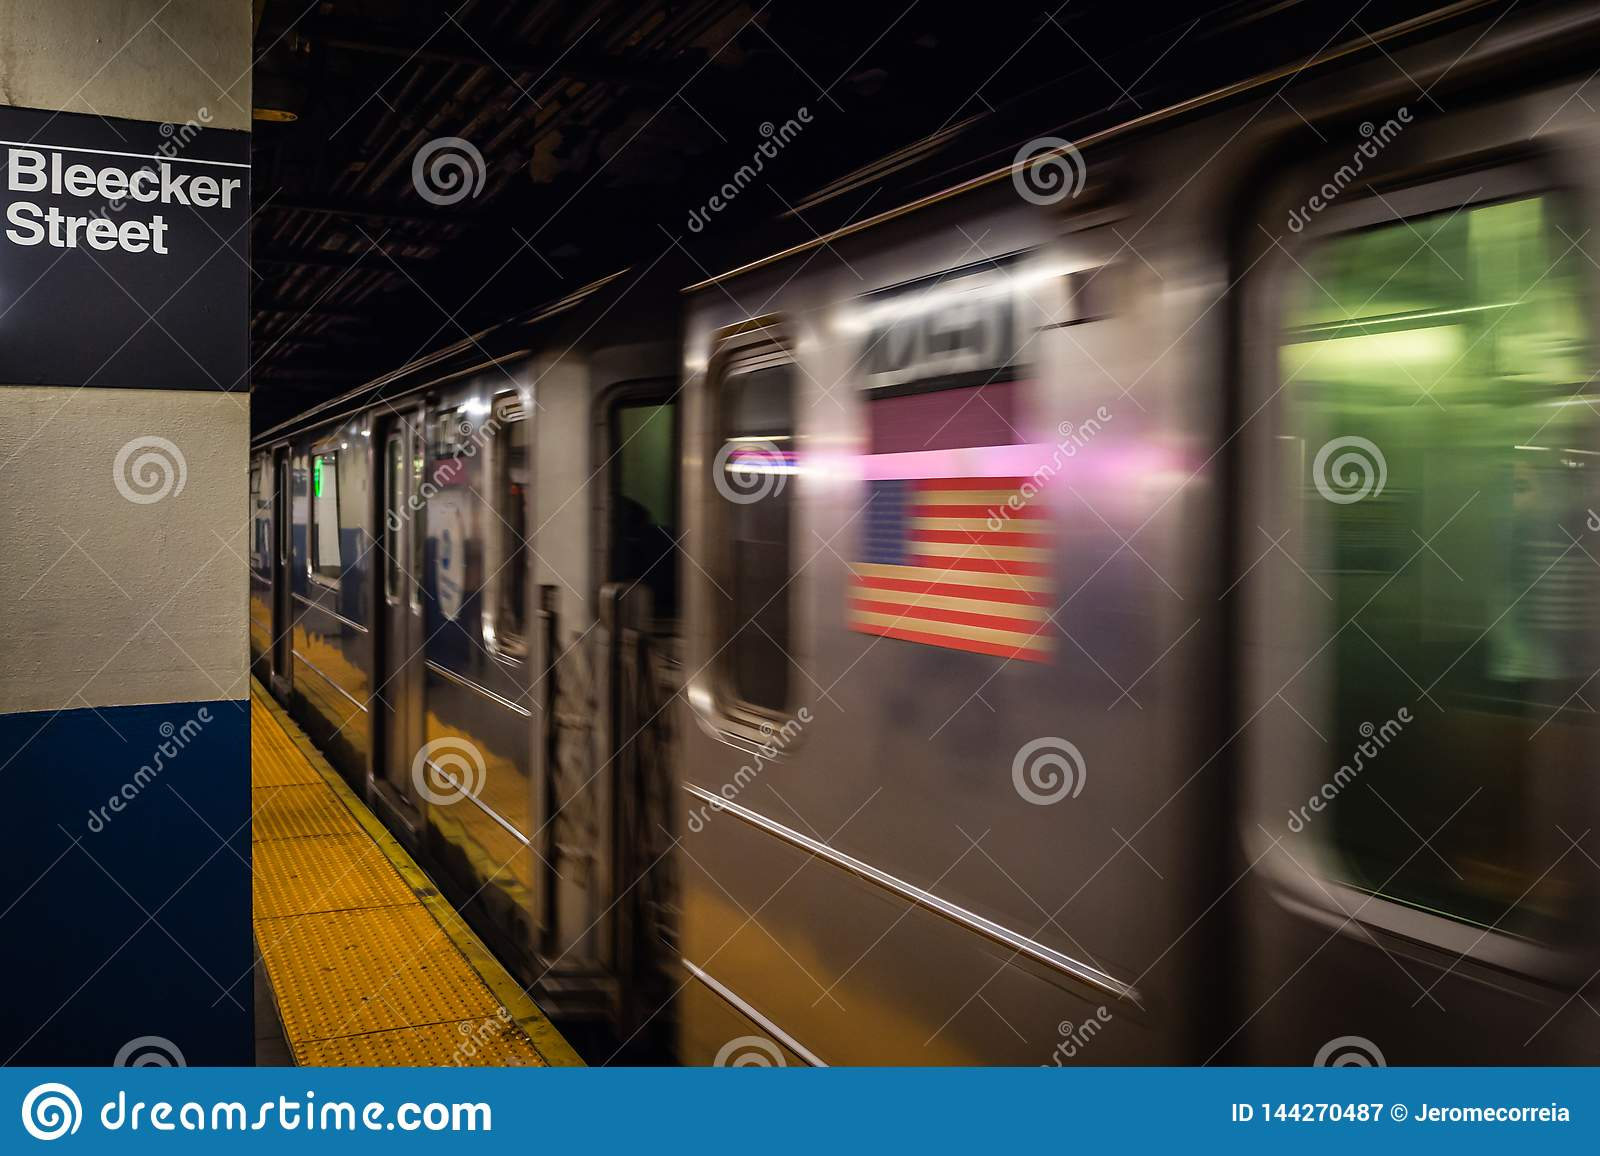 New York City, USA - FEBRUARY 23, 2018: The subway station in Bleecker street station in NYC